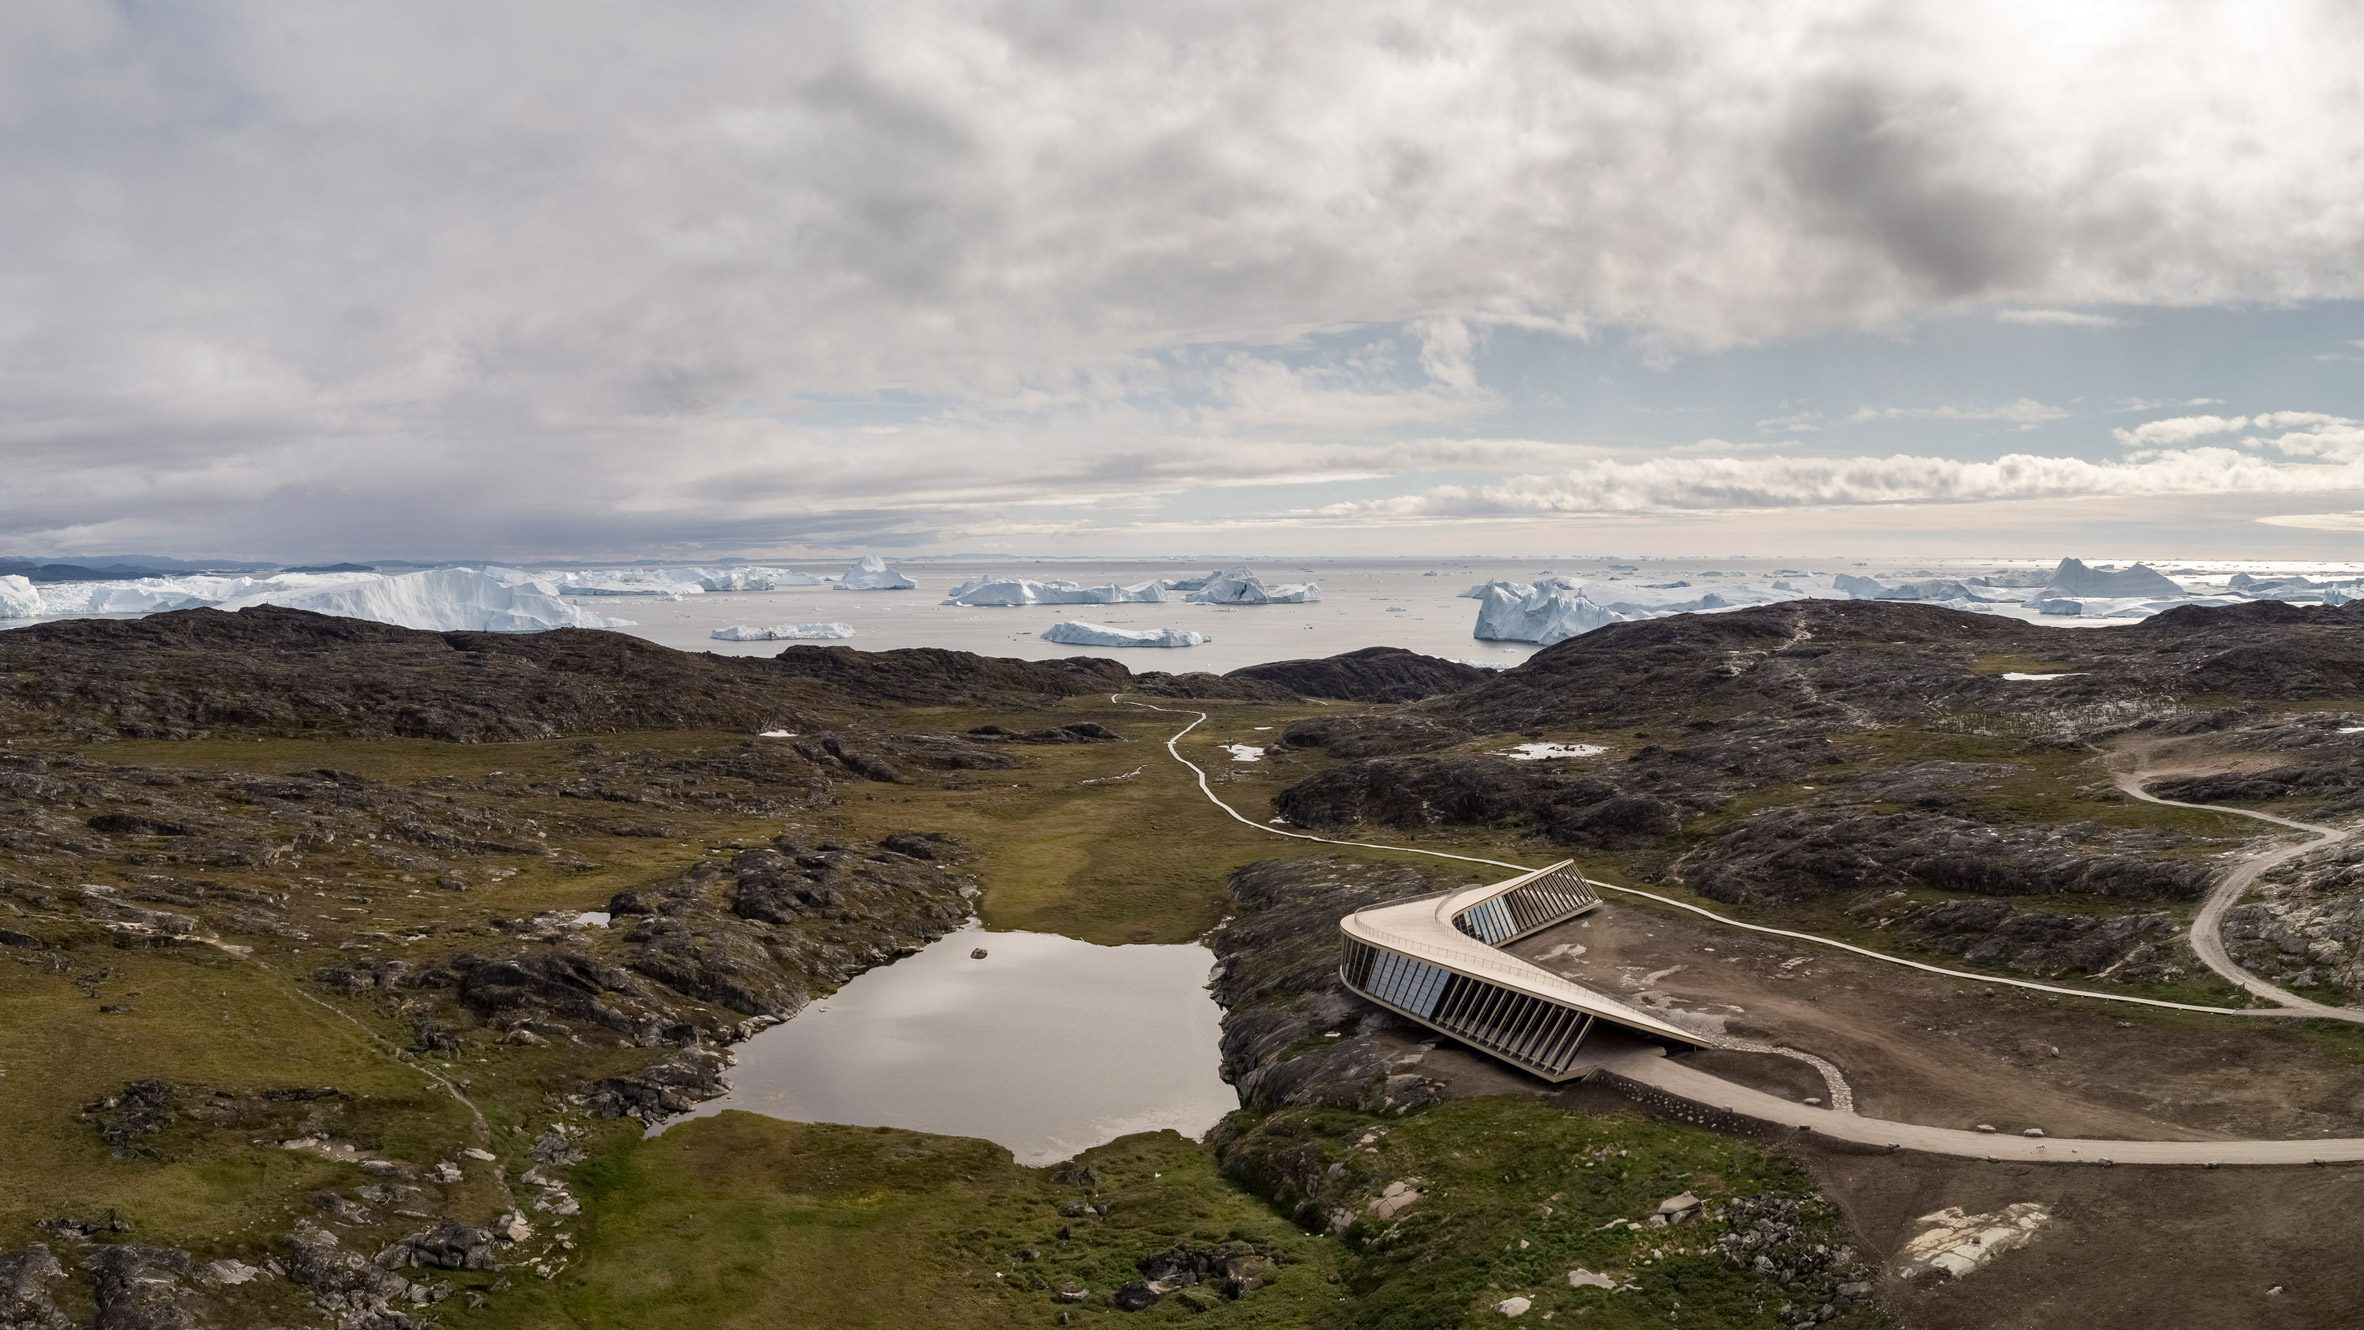 Aerial view of Ilulissat Icefjord Centre by Dorte Mandrup Arkitekter